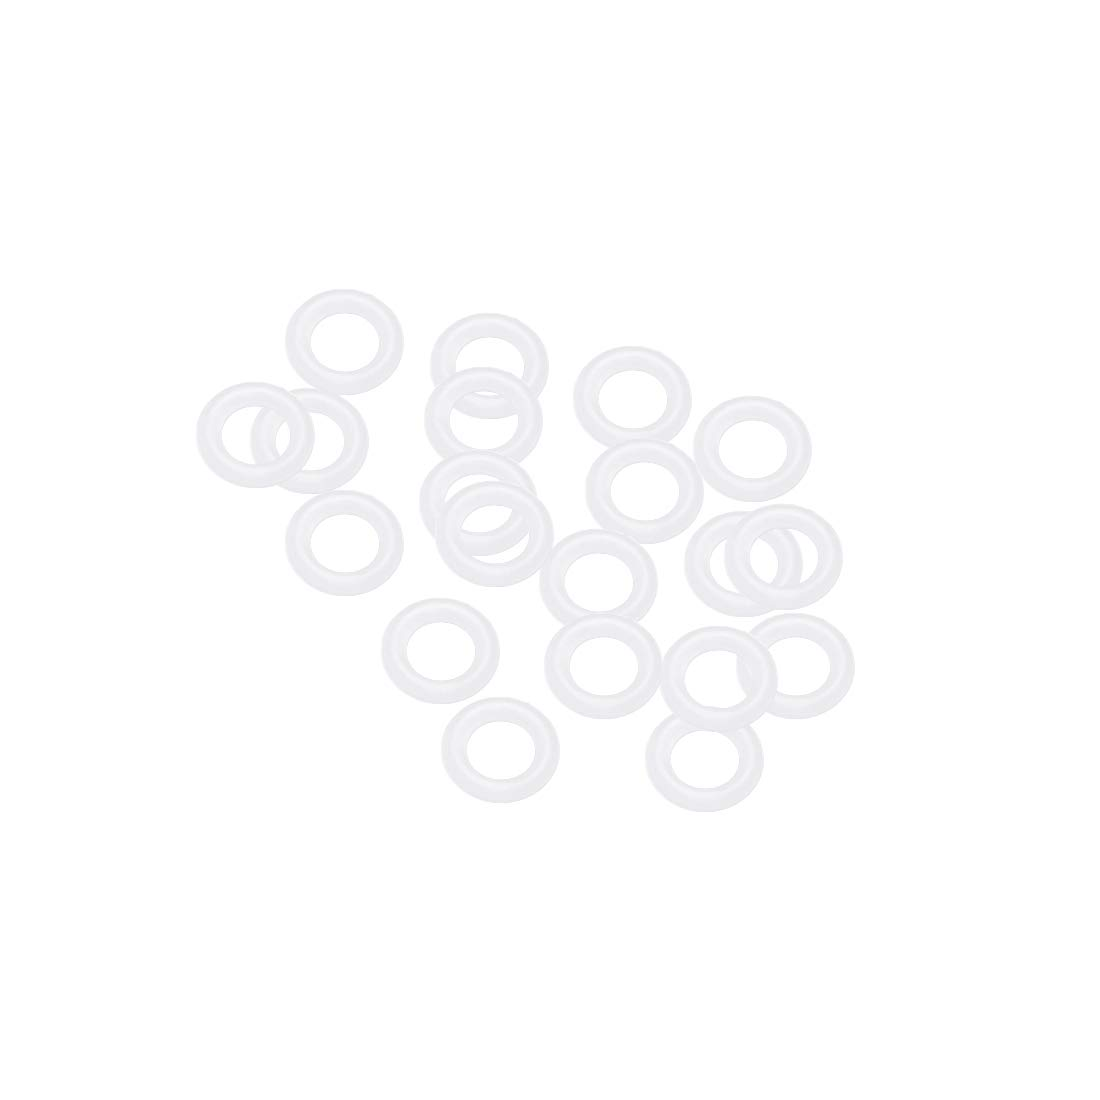 uxcell Silicone O-Rings, 7mm OD 4mm ID 1.5mm Width VMQ Seal Gasket for Compressor Valves Pipe Repair, White, Pack of 20